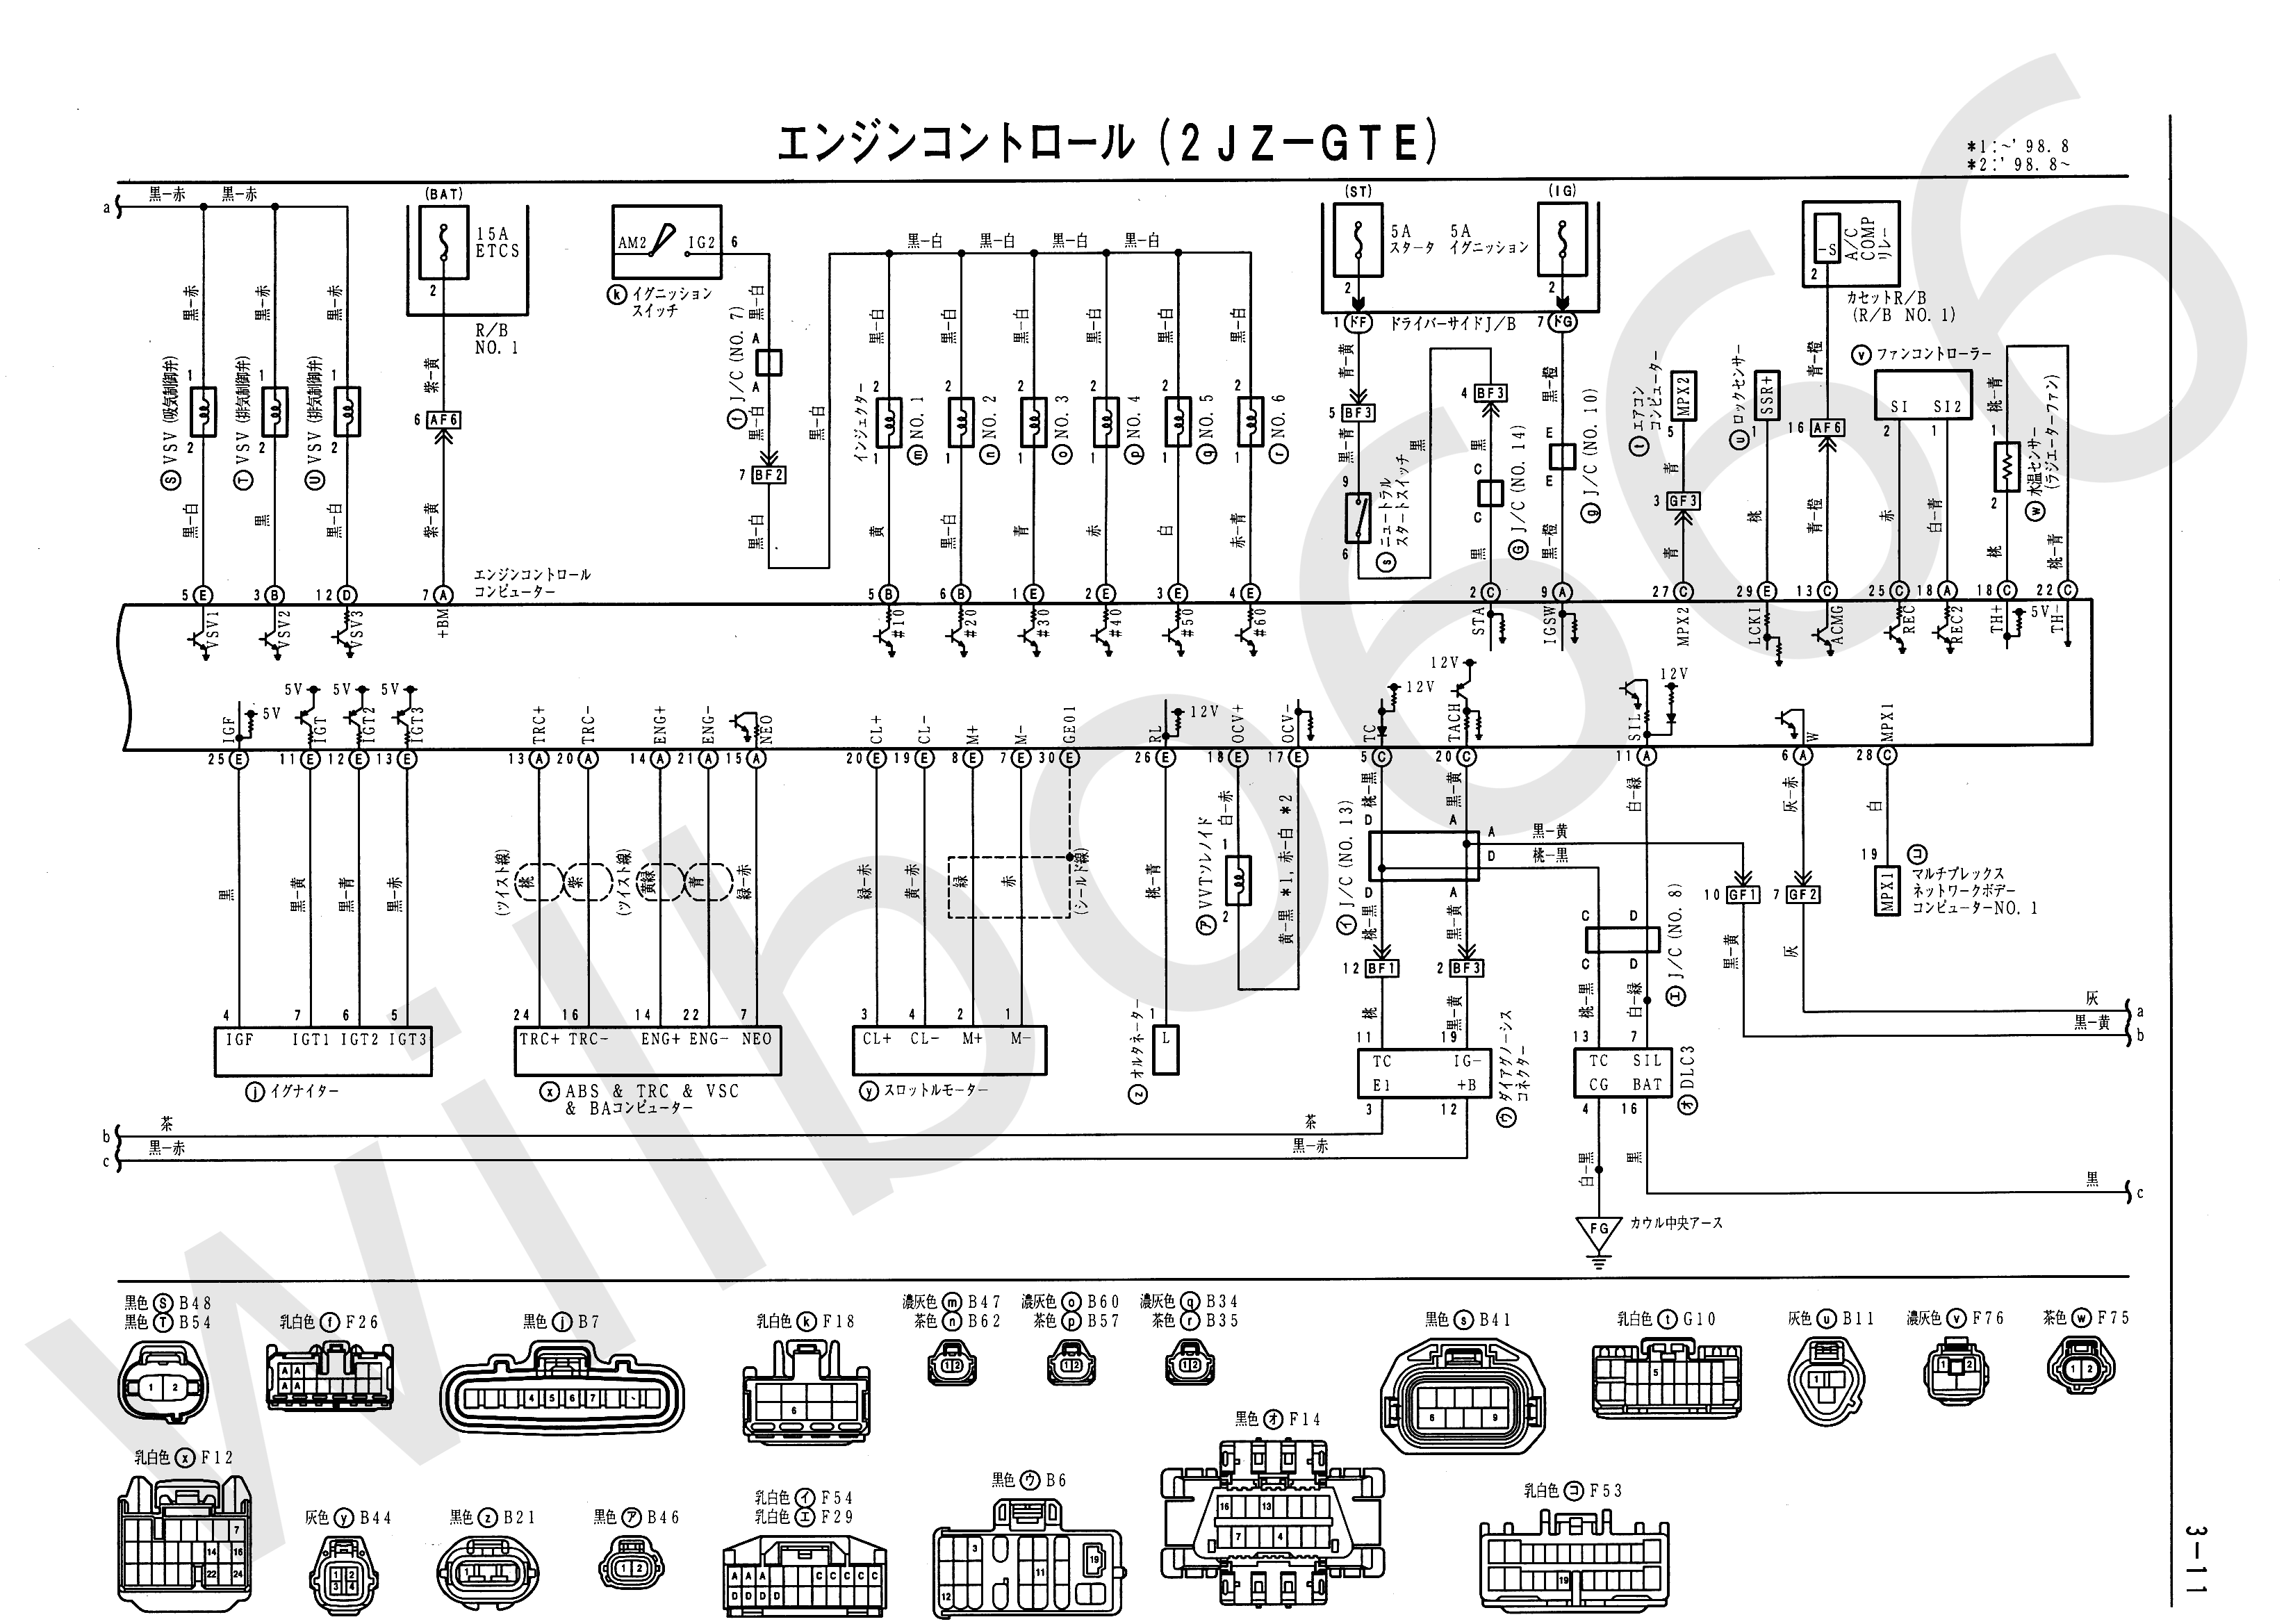 2001 Lexus Is300 Engine Diagram Wiring Library 1996 Sc400 Spark Plug Wire Ls400 2000